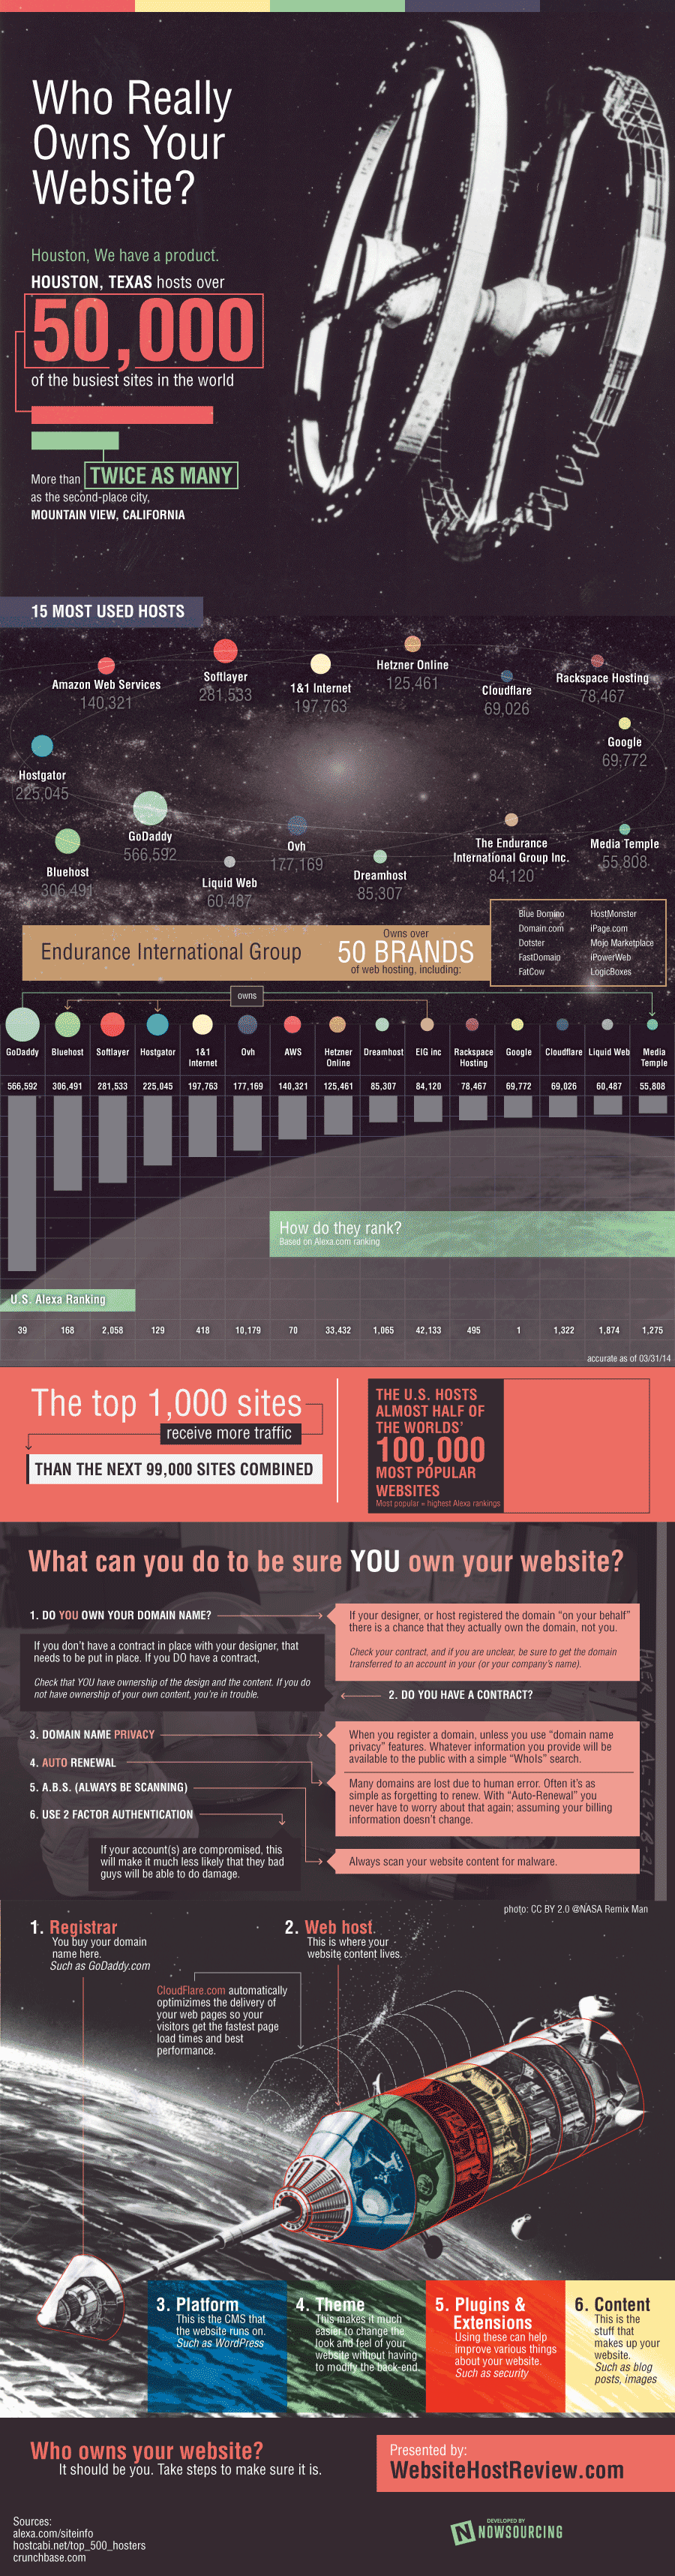 Who Really Owns Your Website?